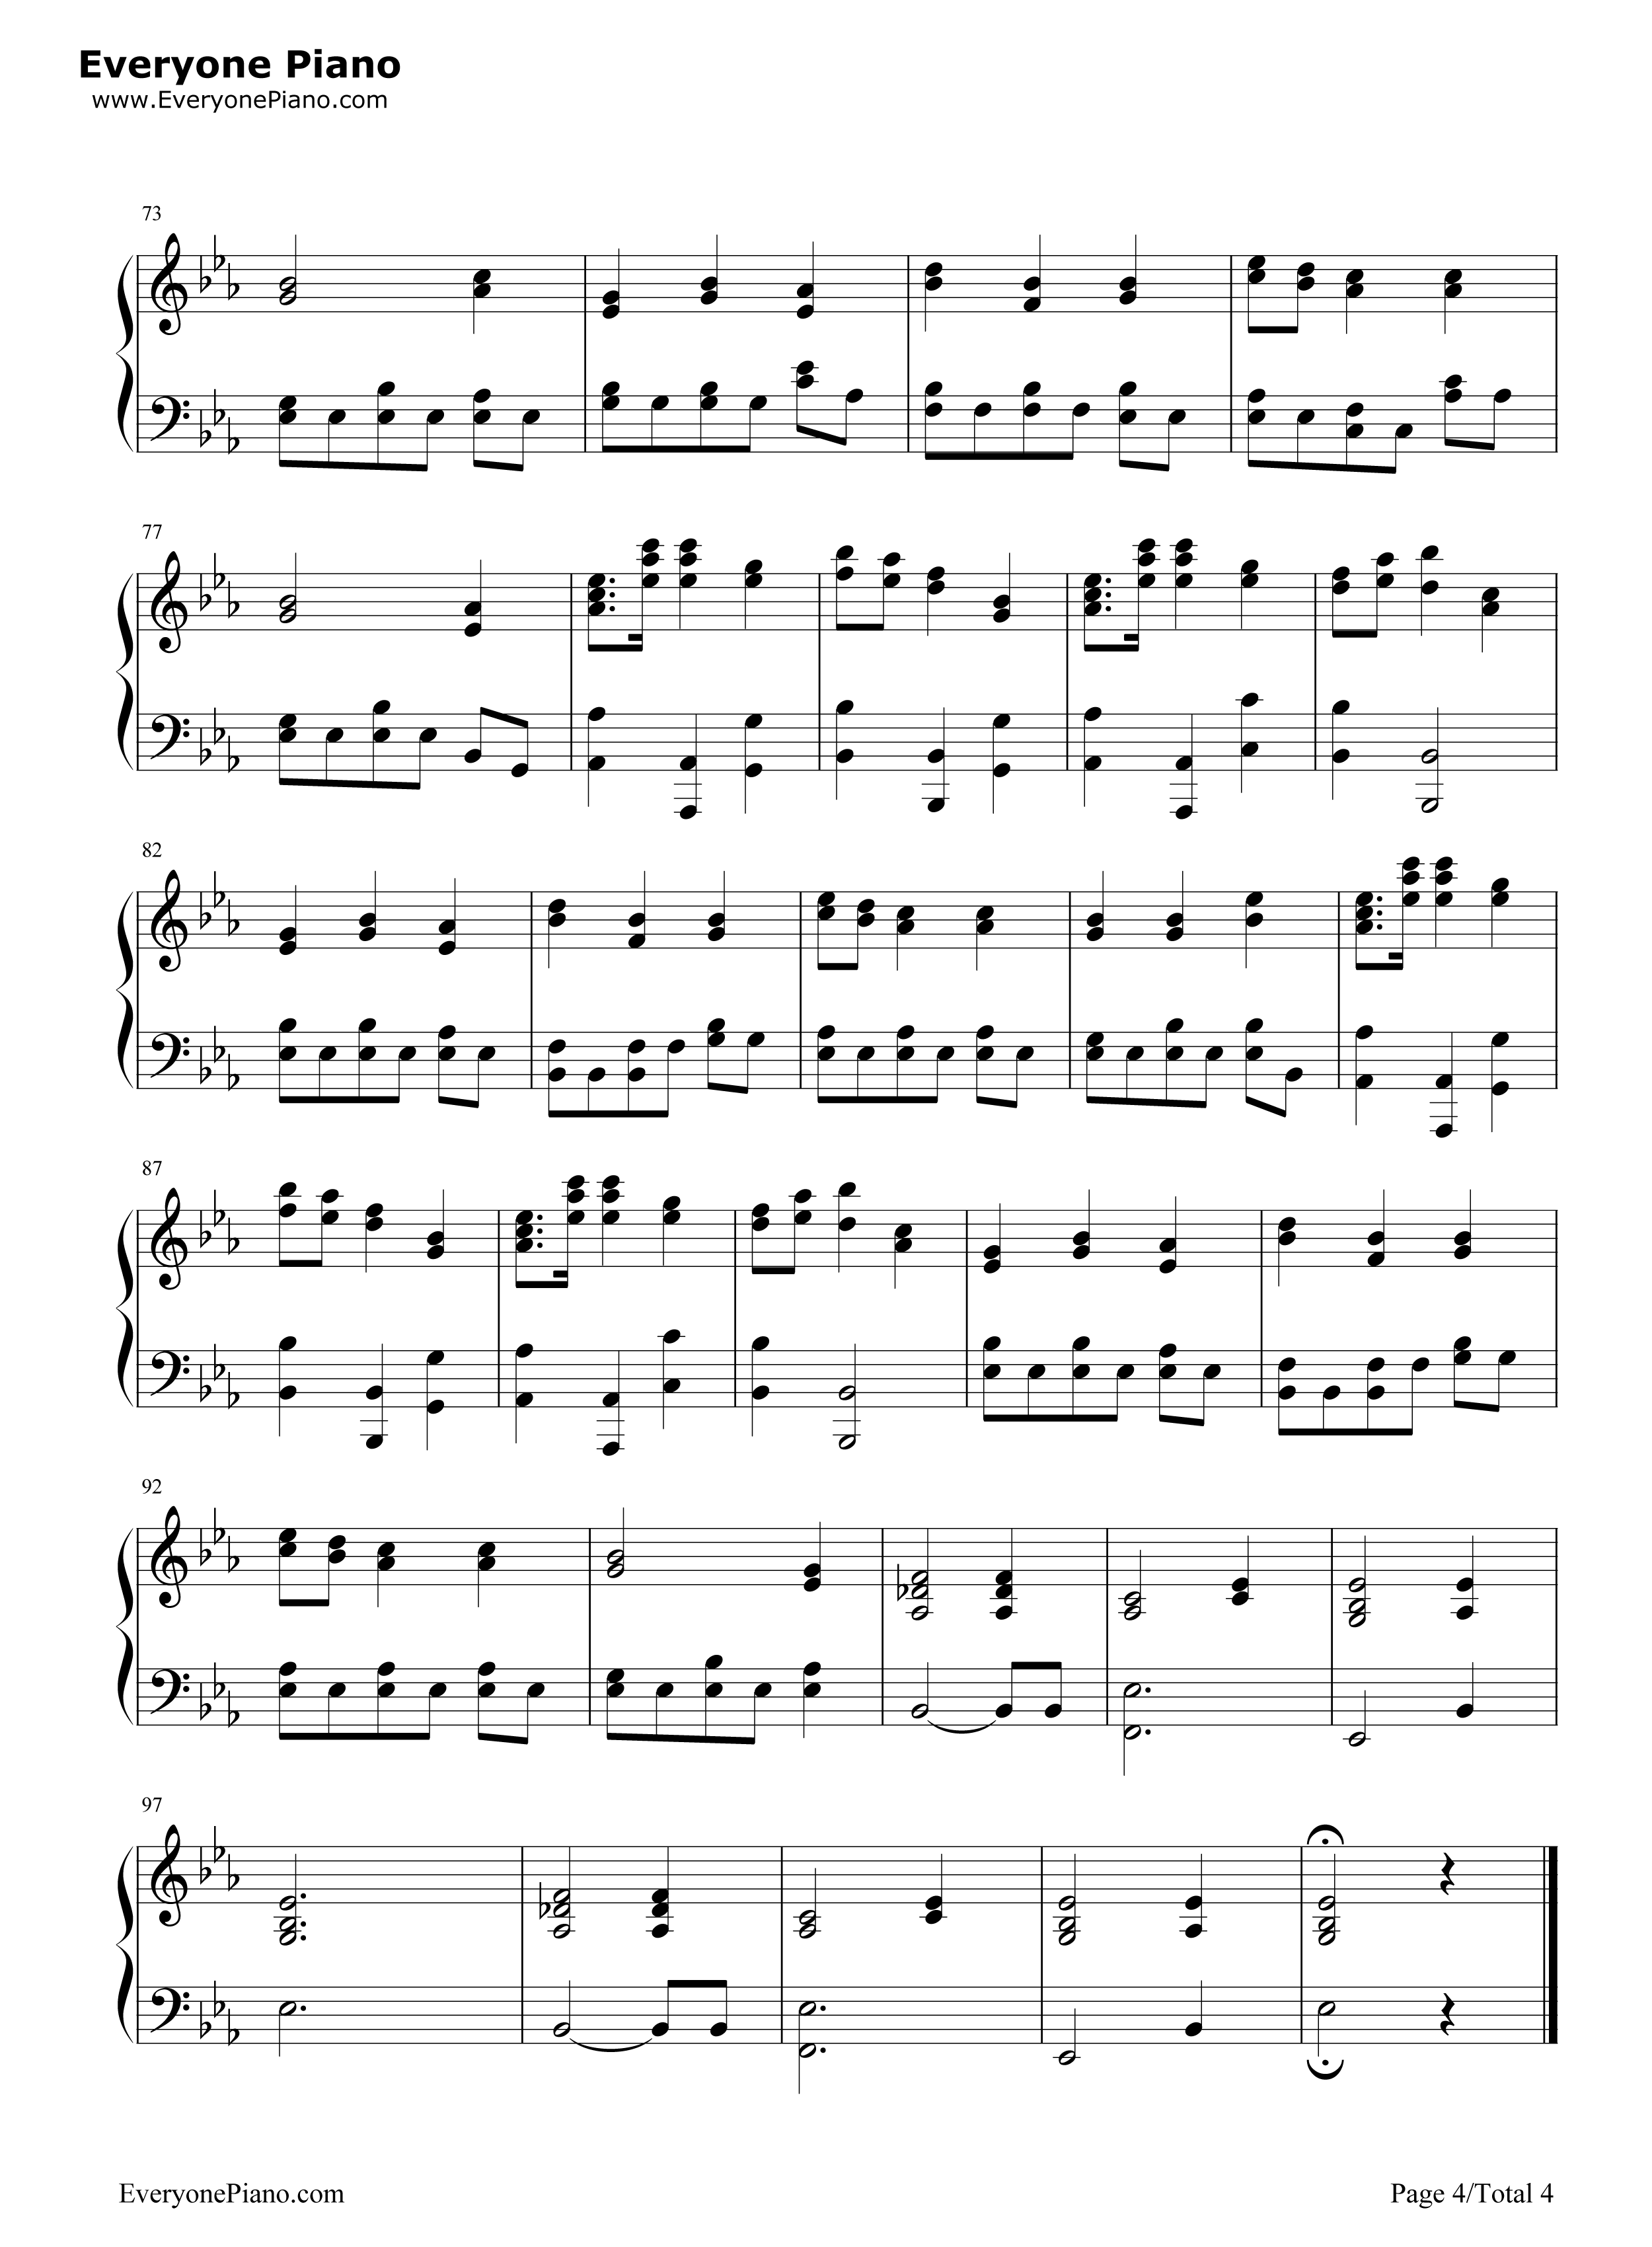 In christ alone owl city stave preview 4 free piano sheet music listen now print sheet in christ alone owl city stave preview 4 hexwebz Images